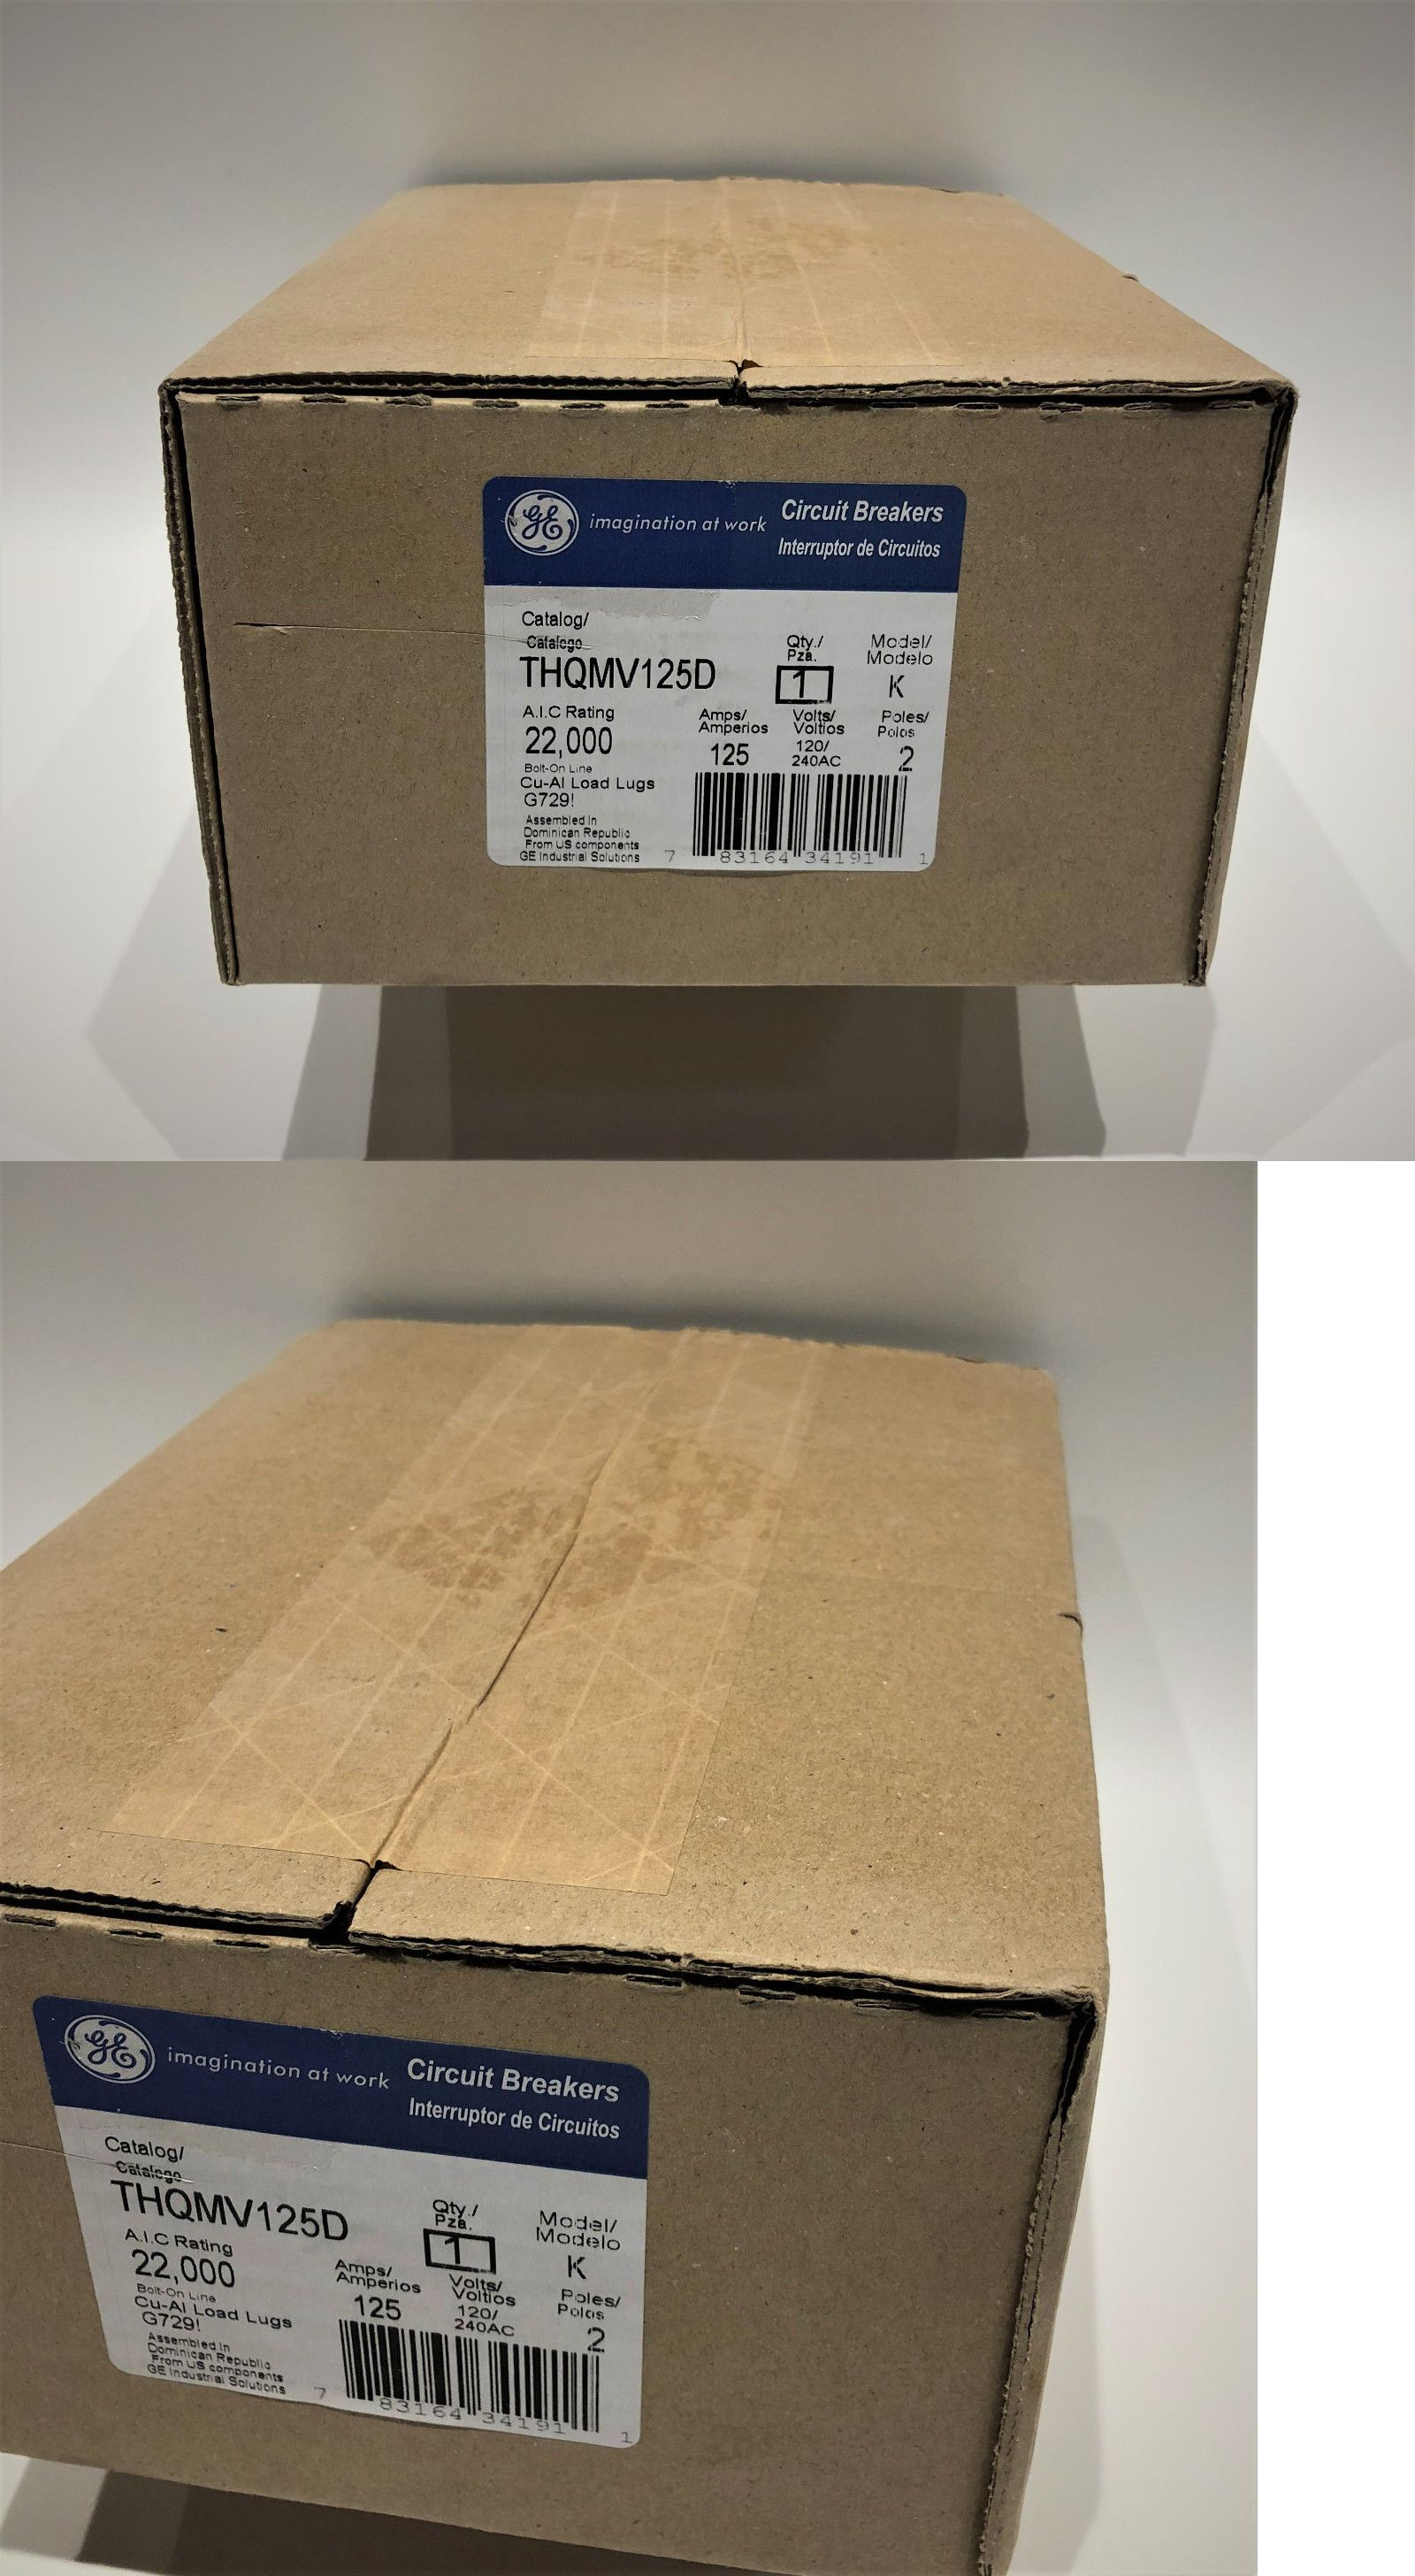 Brand New Factory Sealed Ge Thqmv125d Main Circuit Breaker Afci Box Including Breakers And Fuse Boxes 20596 Buy It Now Only 85 On Ebay